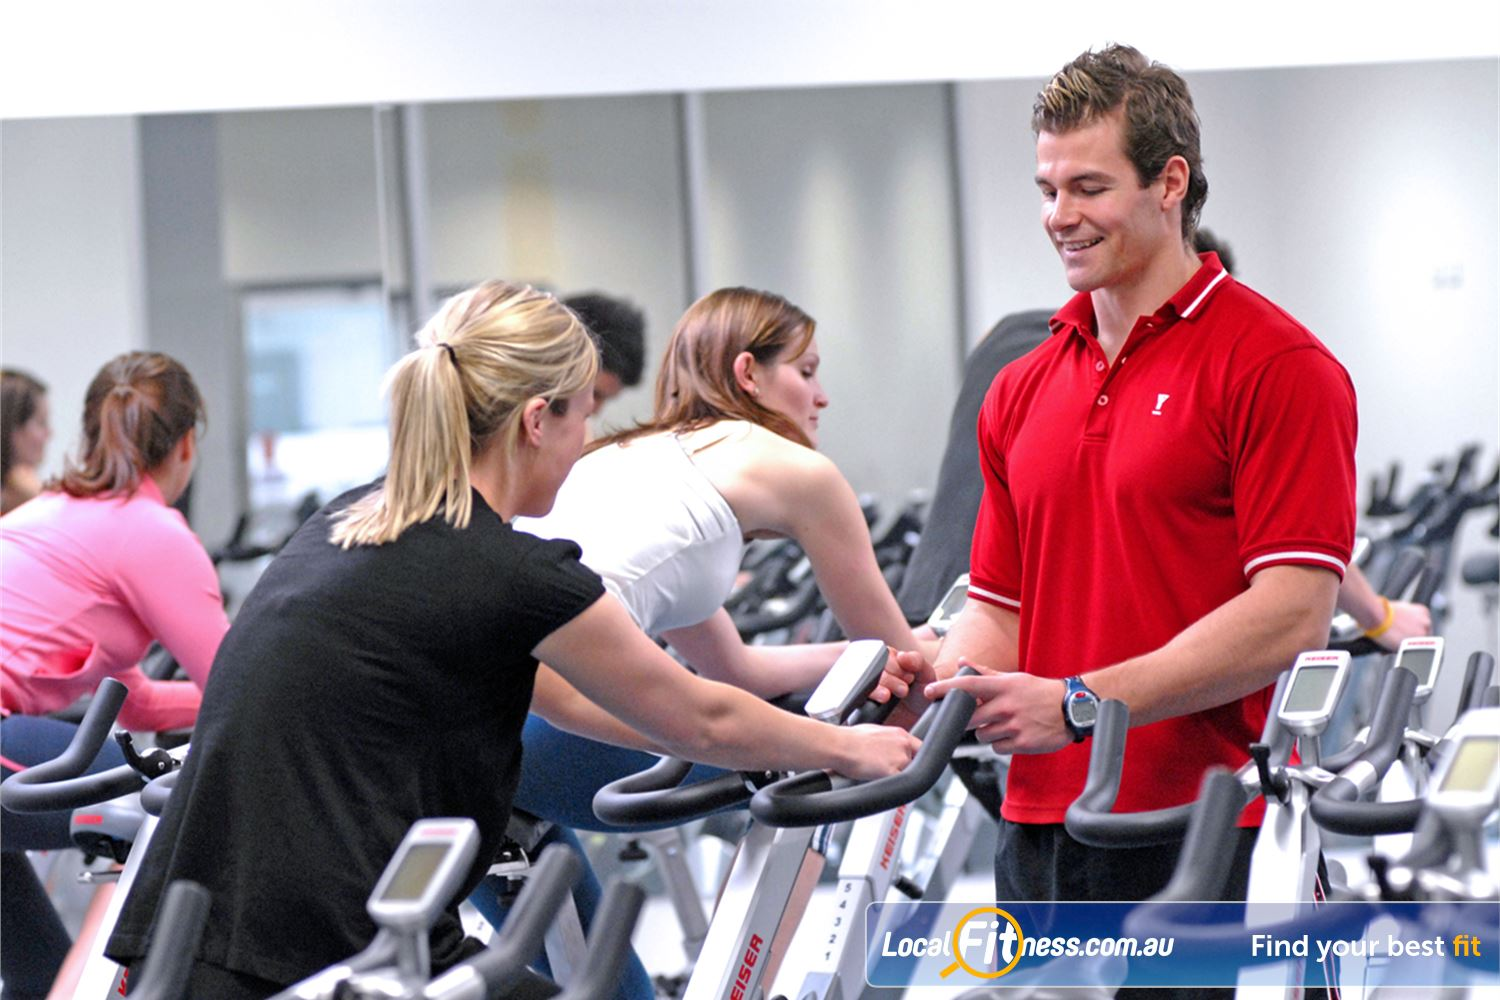 Ascot Vale Leisure Centre Near Aberfeldie Our Acot Vale cycle instructors will help you get the most out of your cycle class.